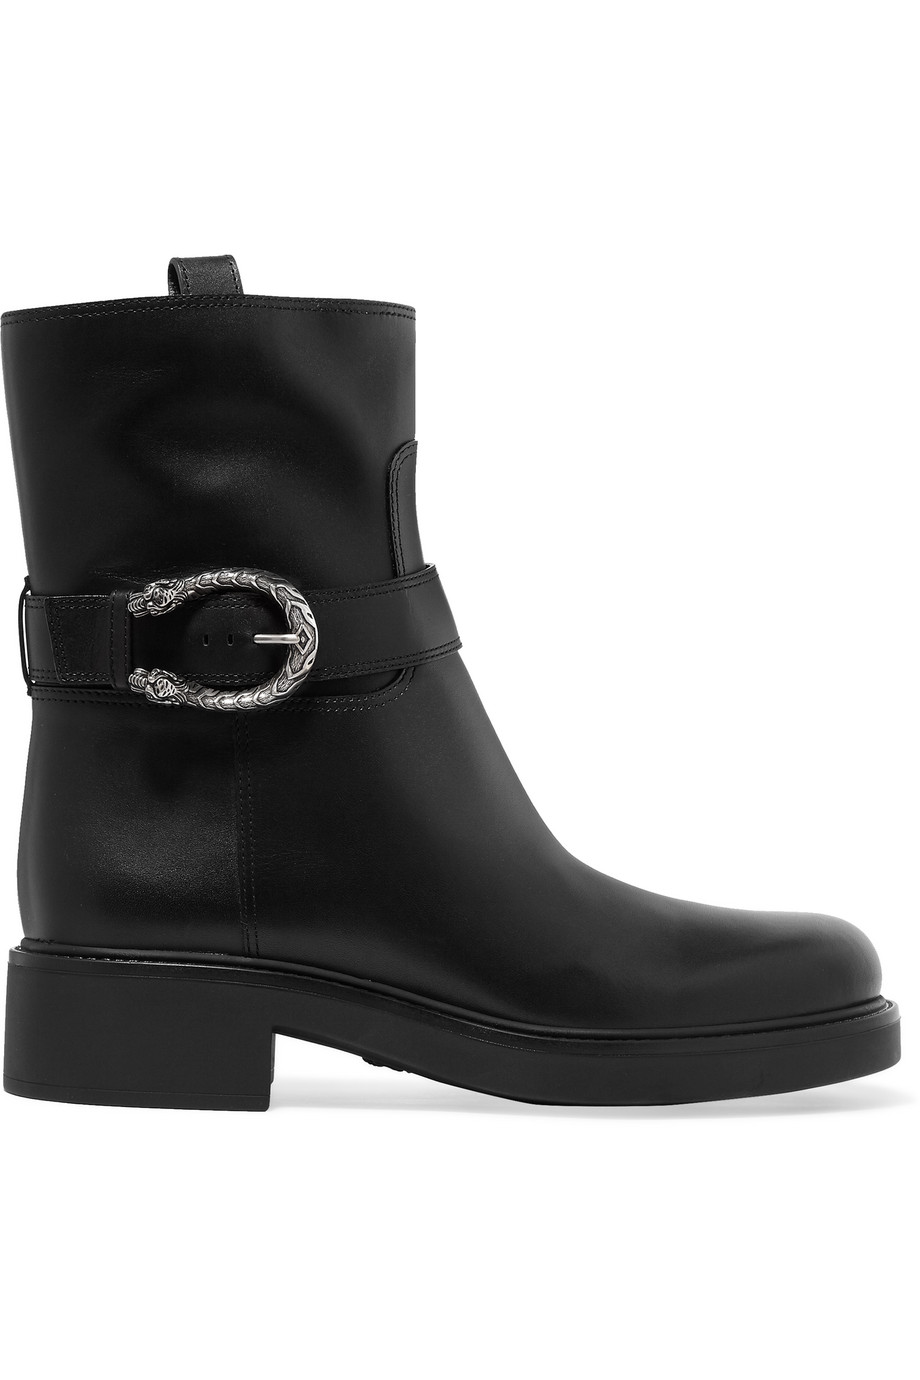 Gucci Dionysus Leather Boots, Size: 37.5